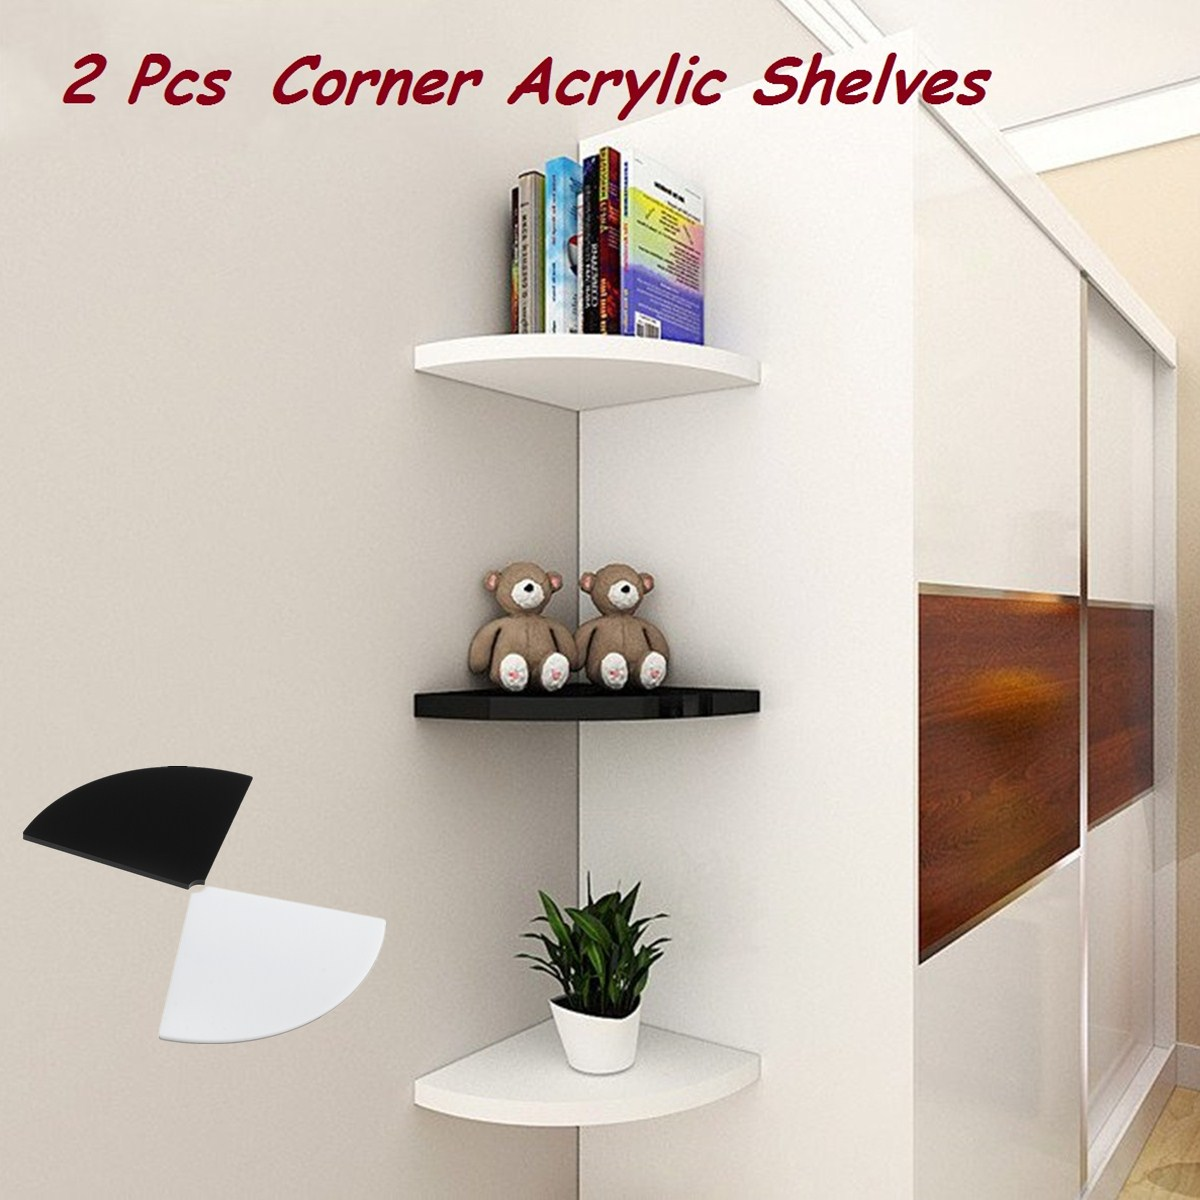 acrylic corner shelf